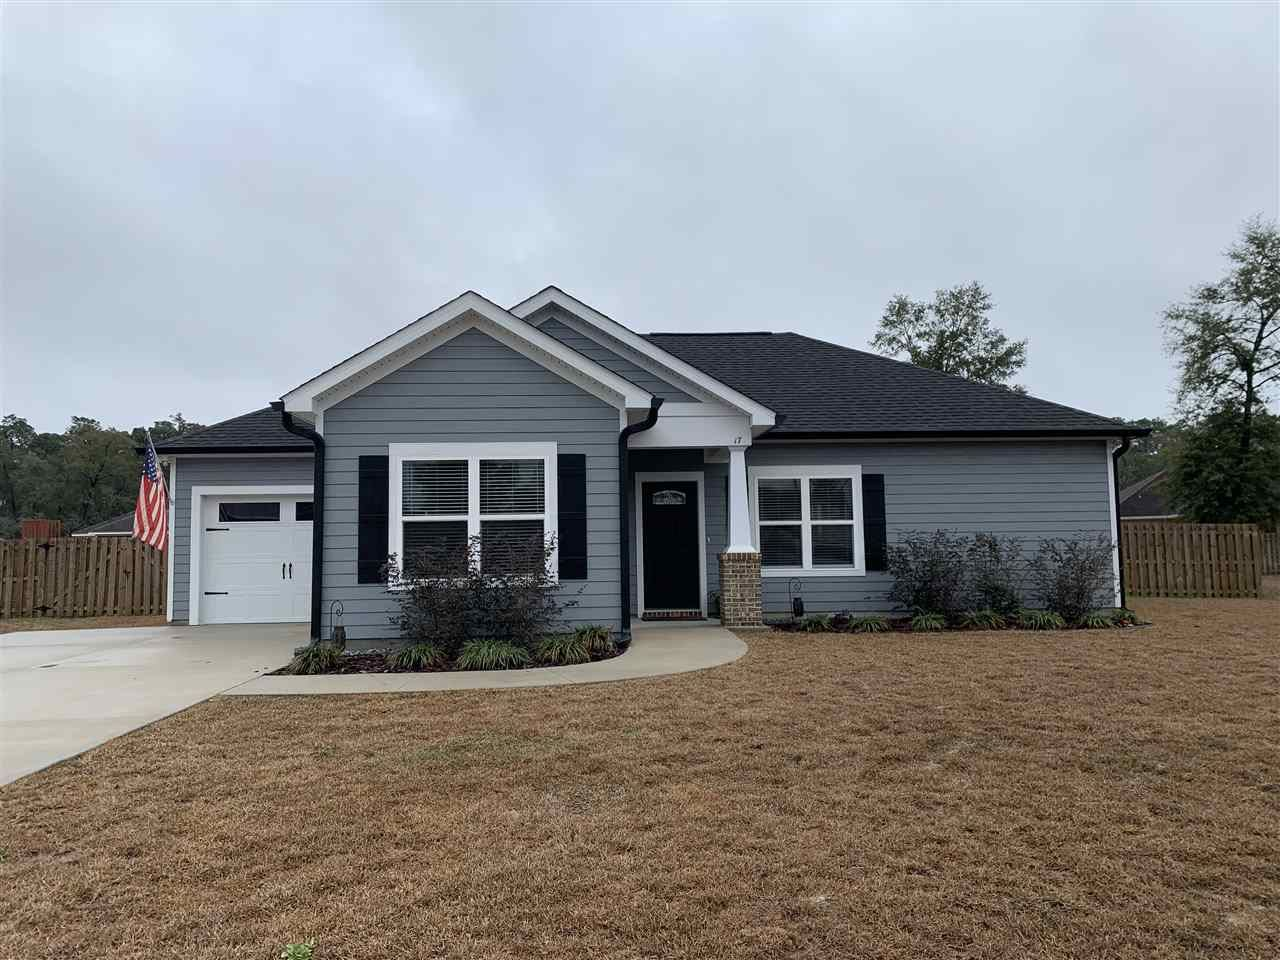 Photo of 17 Sycamore Trail, CRAWFORDVILLE, FL 32327 (MLS # 327672)